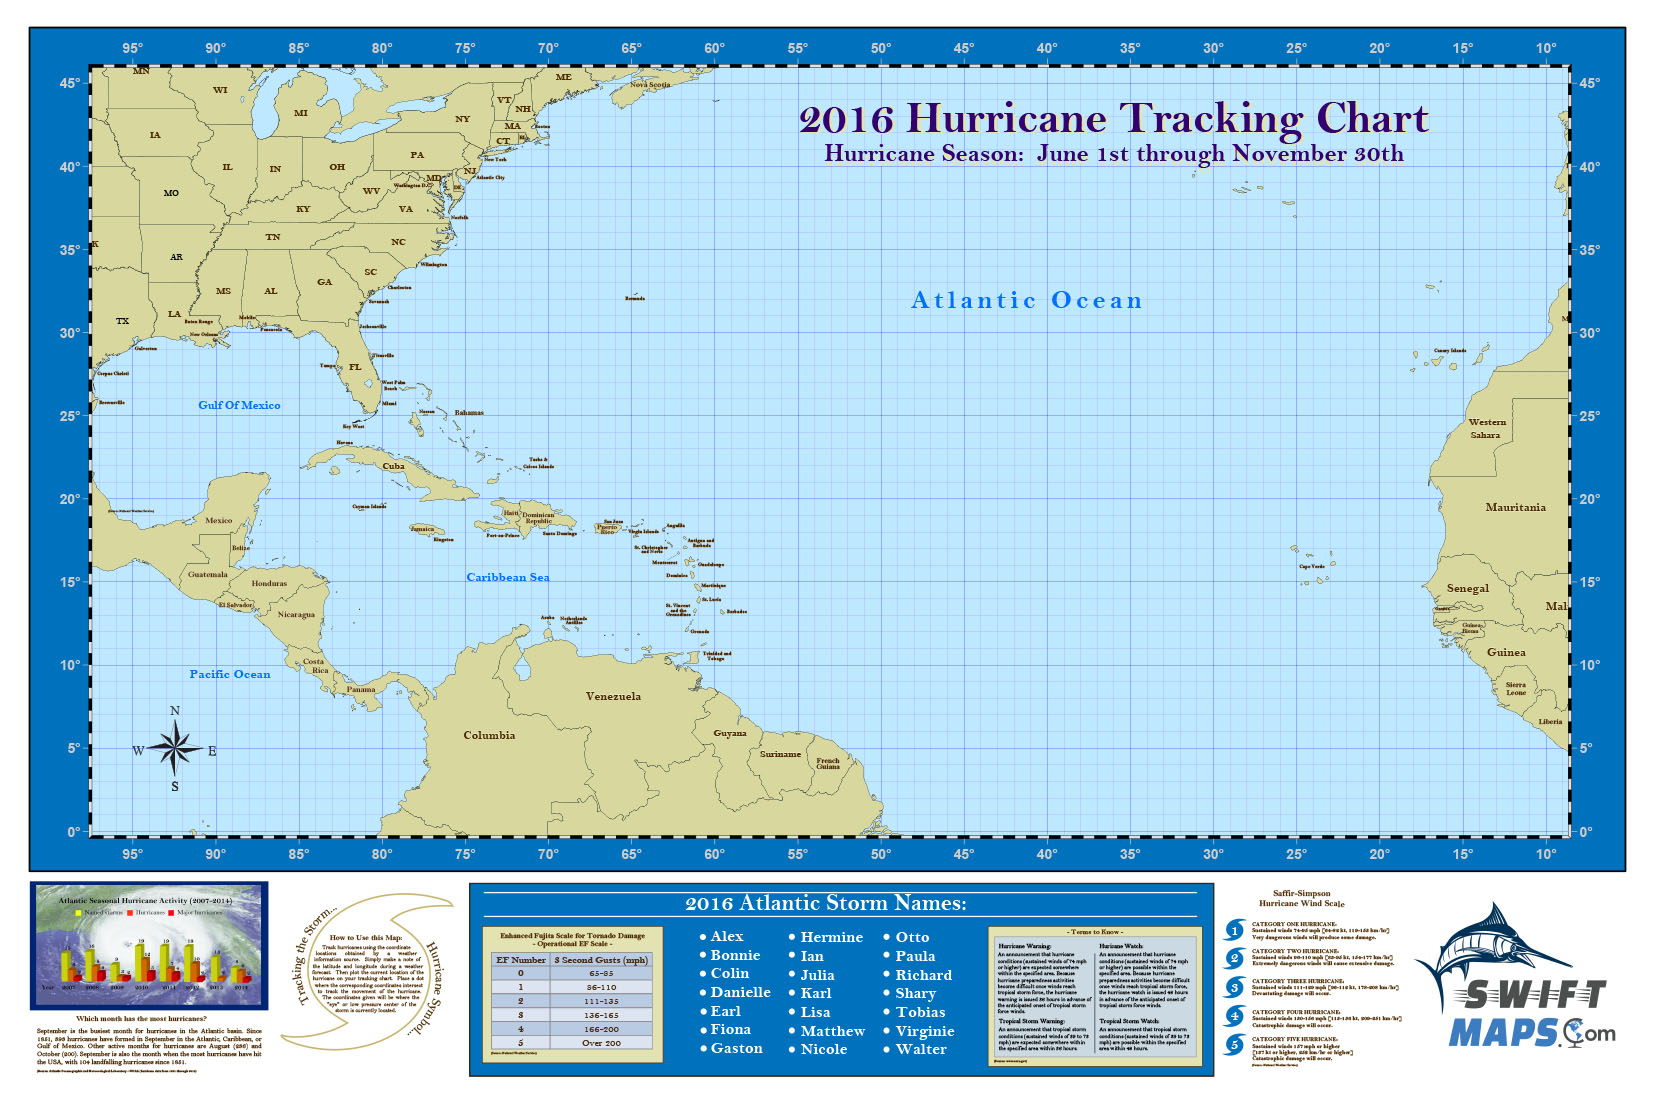 Atlantic Basin Hurricane Tracking Chart